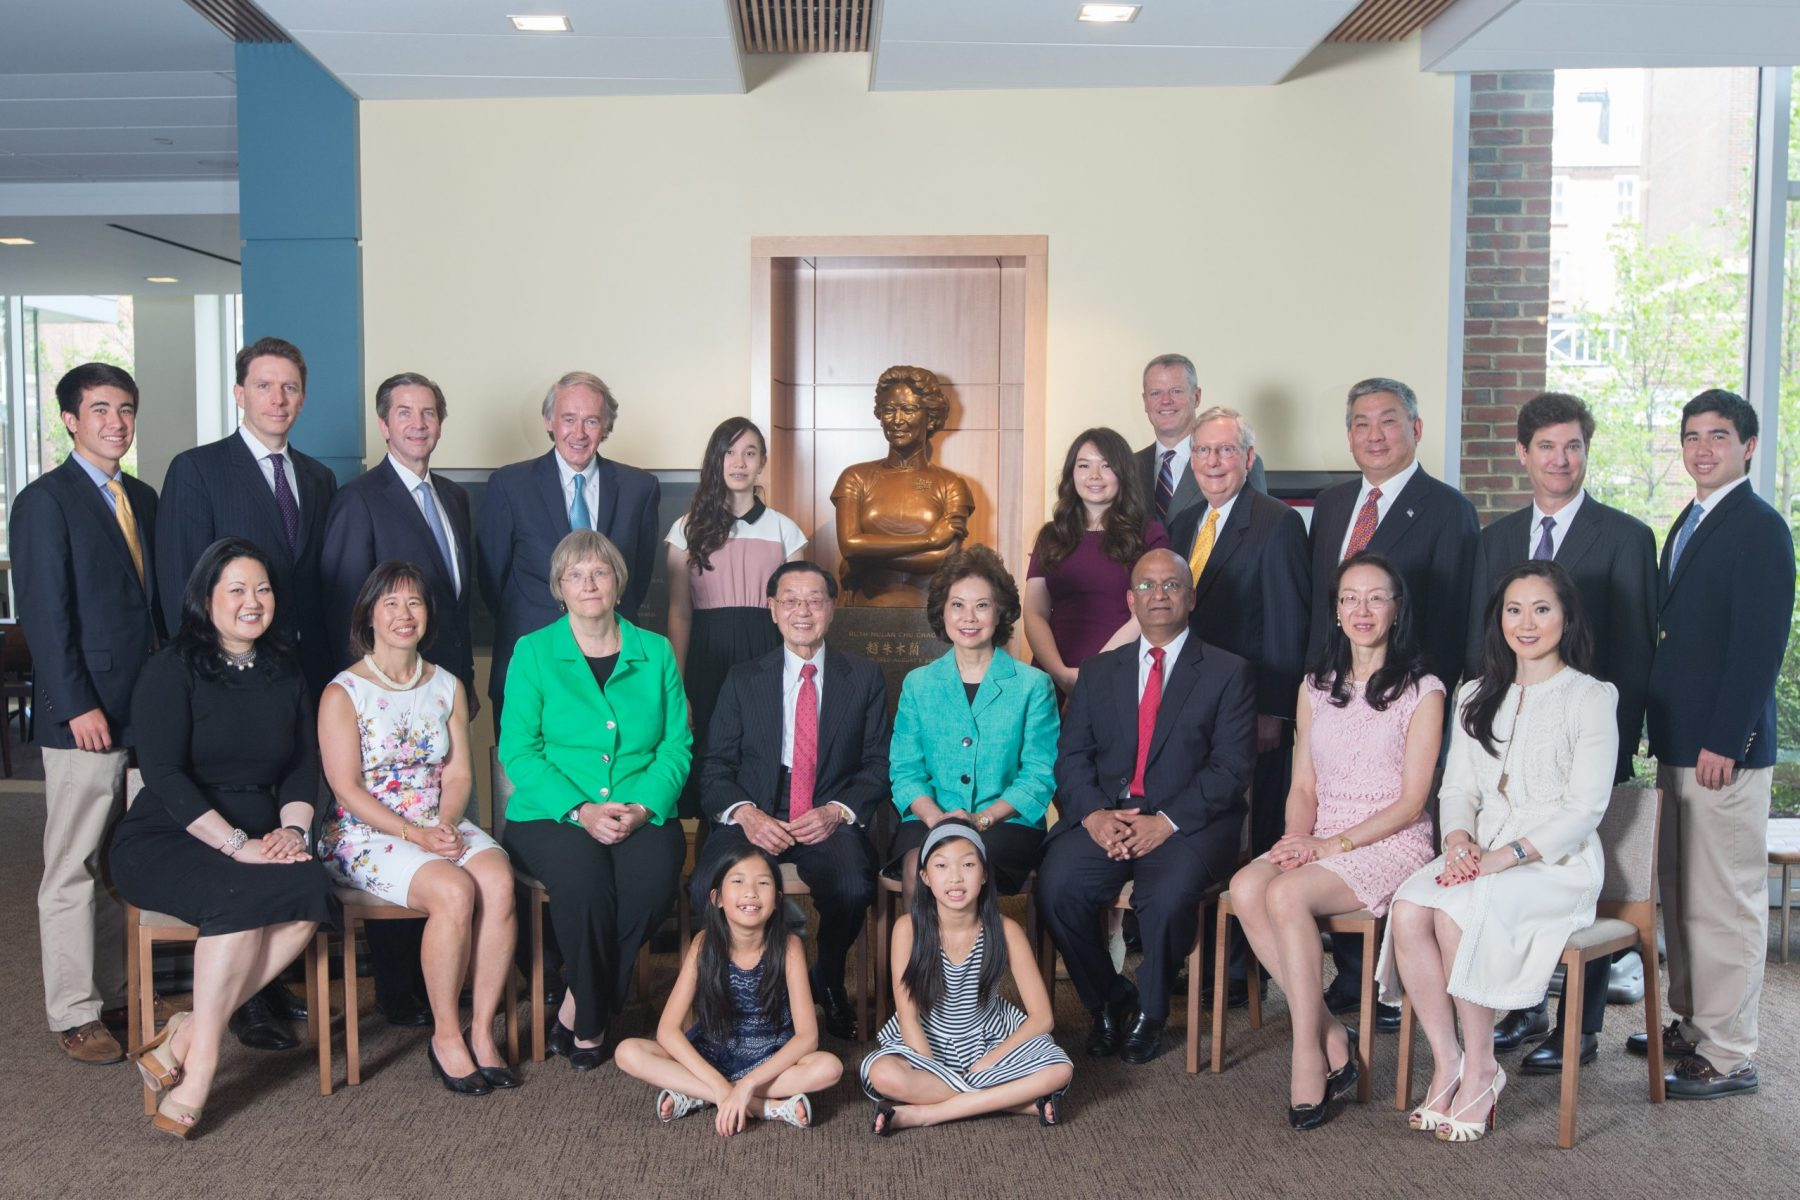 Dr. James S. C. Chao and the Honorable Elaine Chao with dignitaries & family at the Dedication of the Ruth Mulan Chu Chao Center, Harvard University besides the specially commissioned bronze sculpture of Mrs. Ruth Mulan Chu Chao.